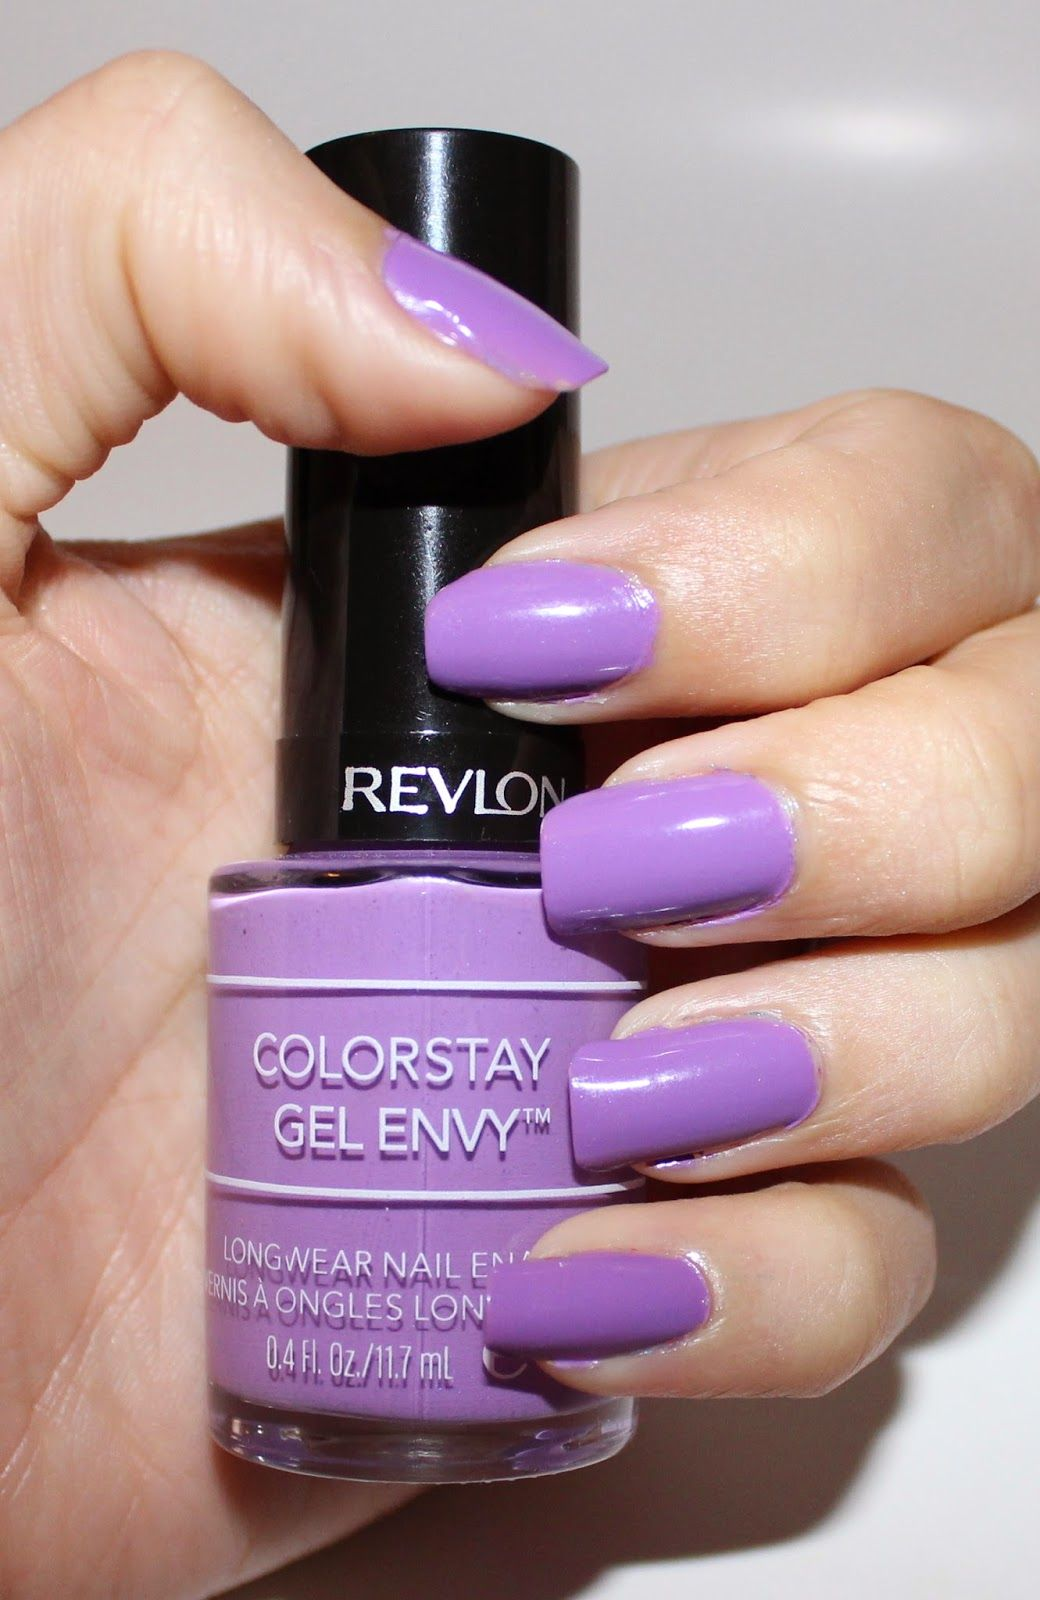 Beyond blush revlon colorstay gel envy longwear nail enamel in beyond blush revlon colorstay gel envy longwear nail enamel in winning streak nvjuhfo Image collections